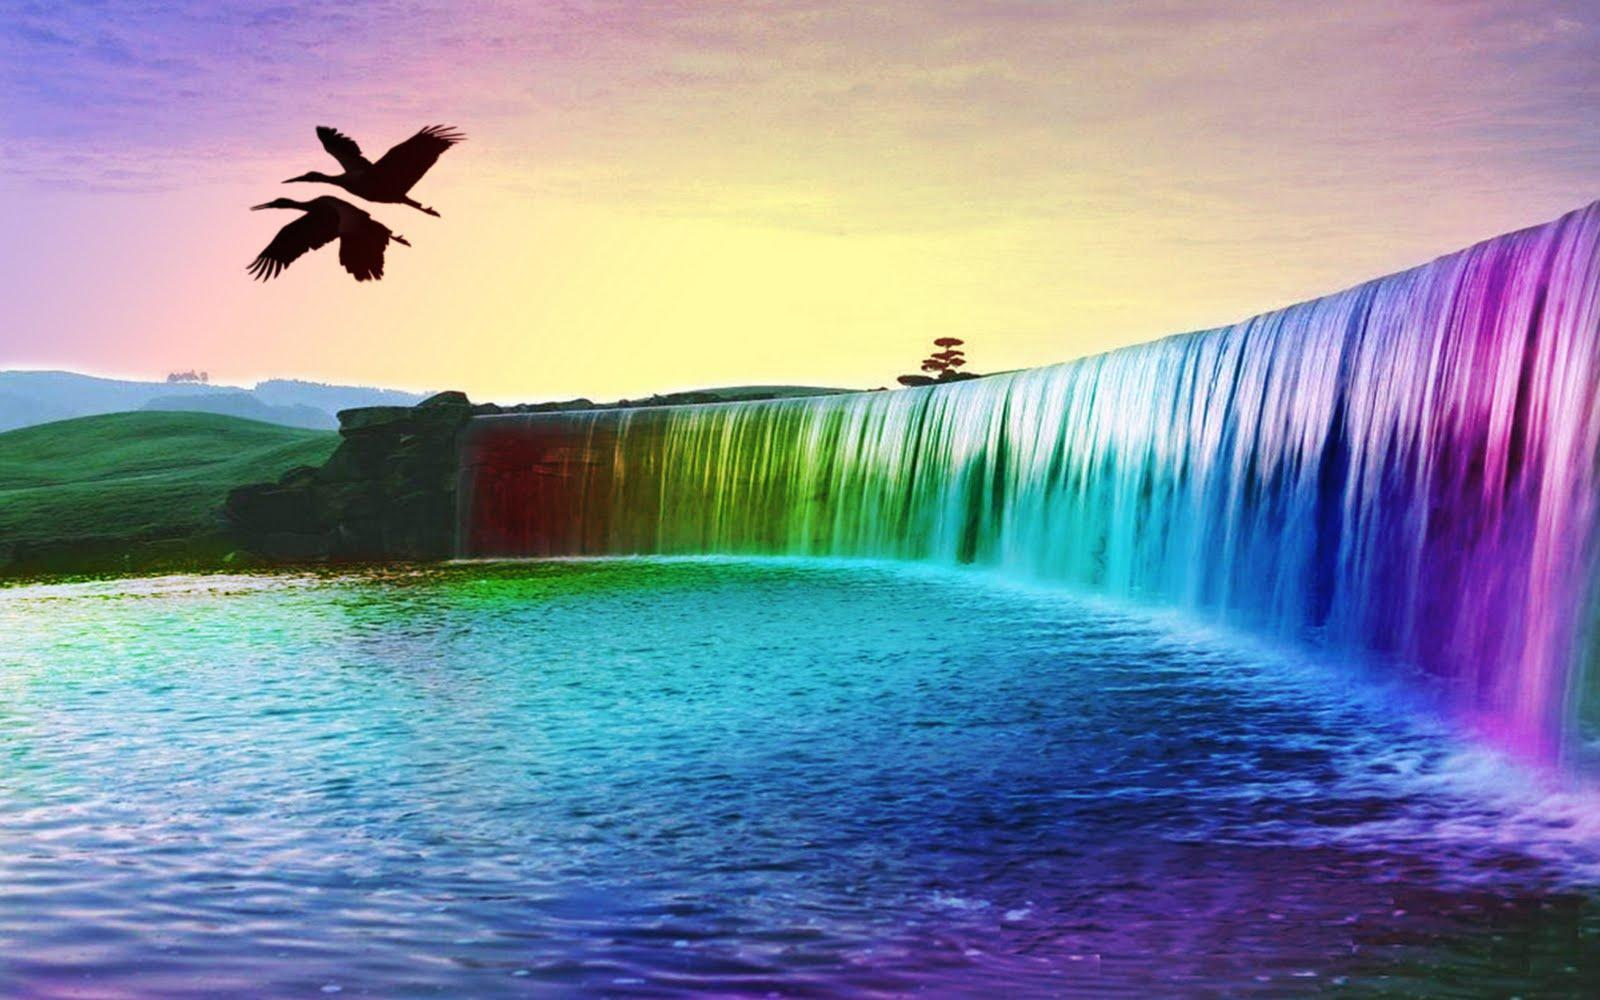 3D Waterfall Desktop Backgrounds Widescreen Wallpapers 1920x1080